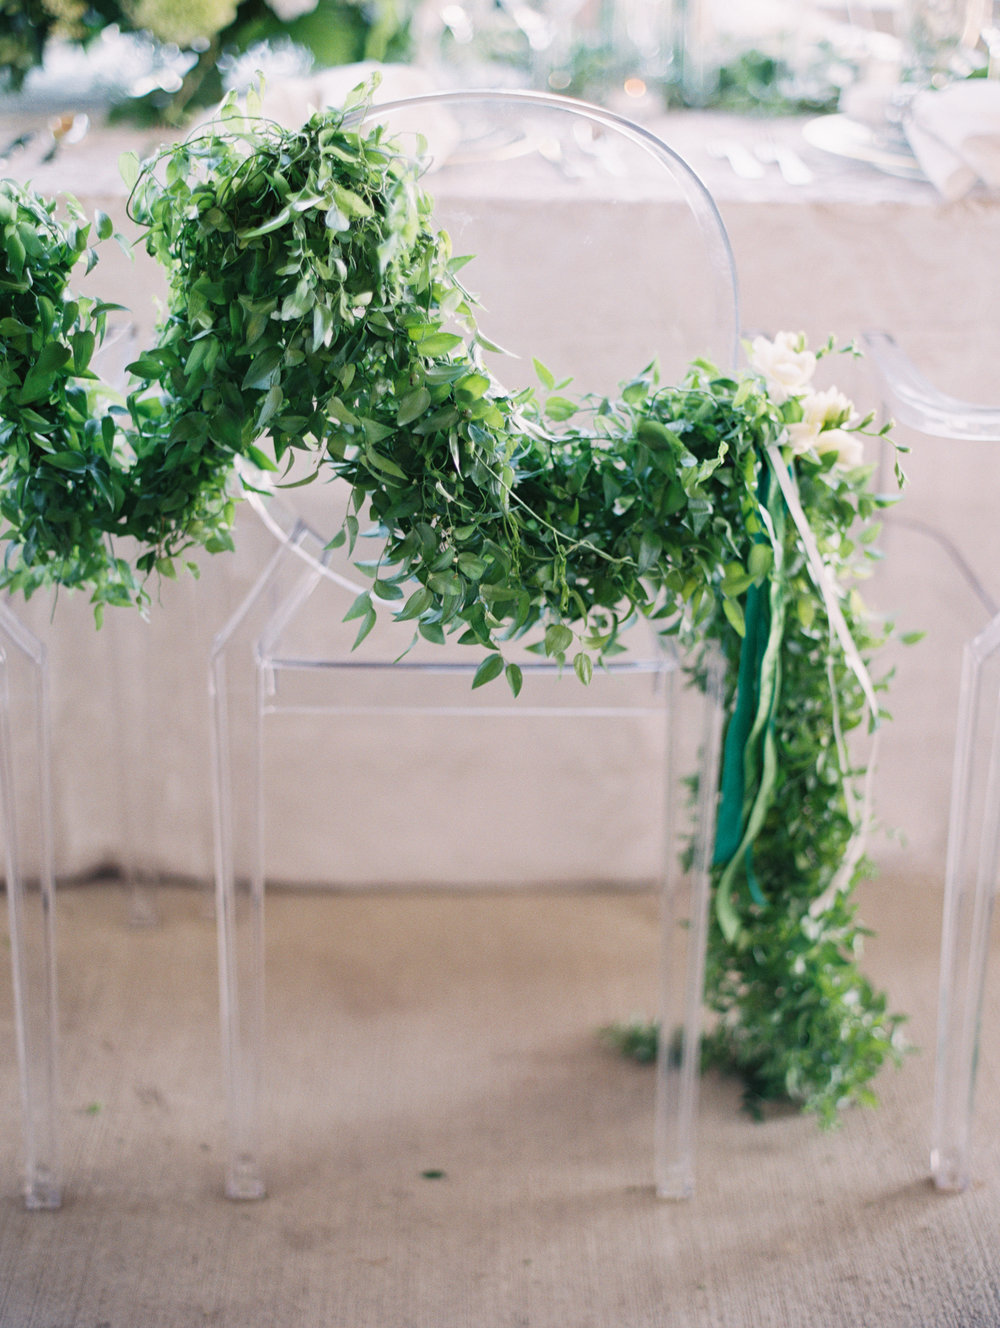 Green and white castle wedding inspiration by Columbus, Ohio wedding planner Meggie Francisco. Photo by Allen Tsai.